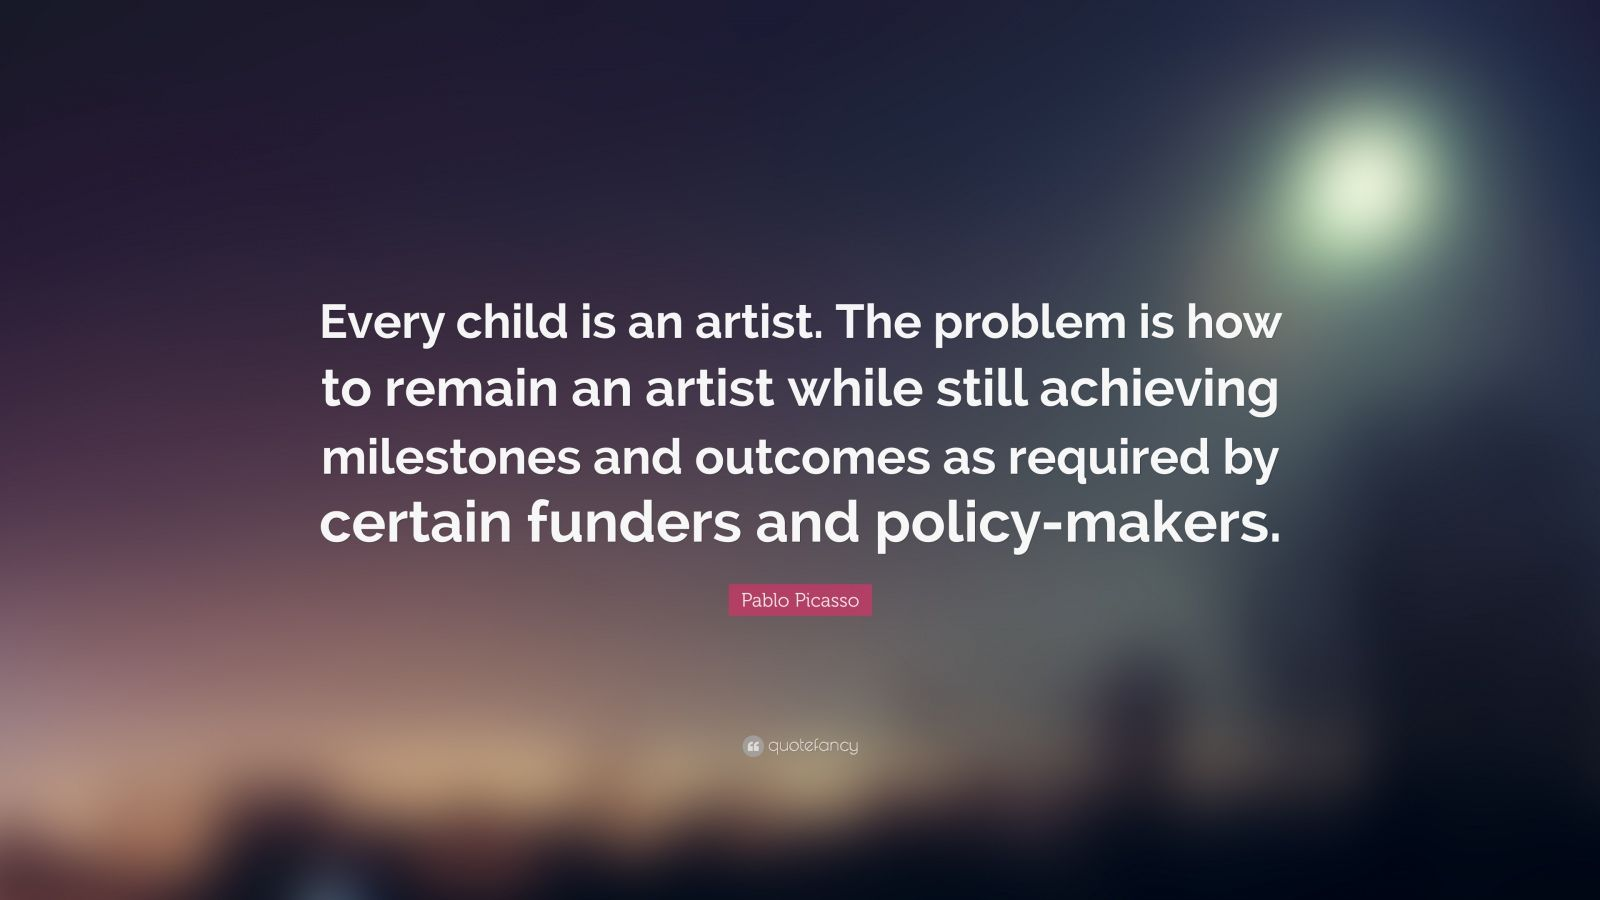 """Pablo Picasso Quote: """"Every child is an artist. The problem is how to remain an artist while still achieving milestones and outcomes as required by certain funders and policy-makers."""""""